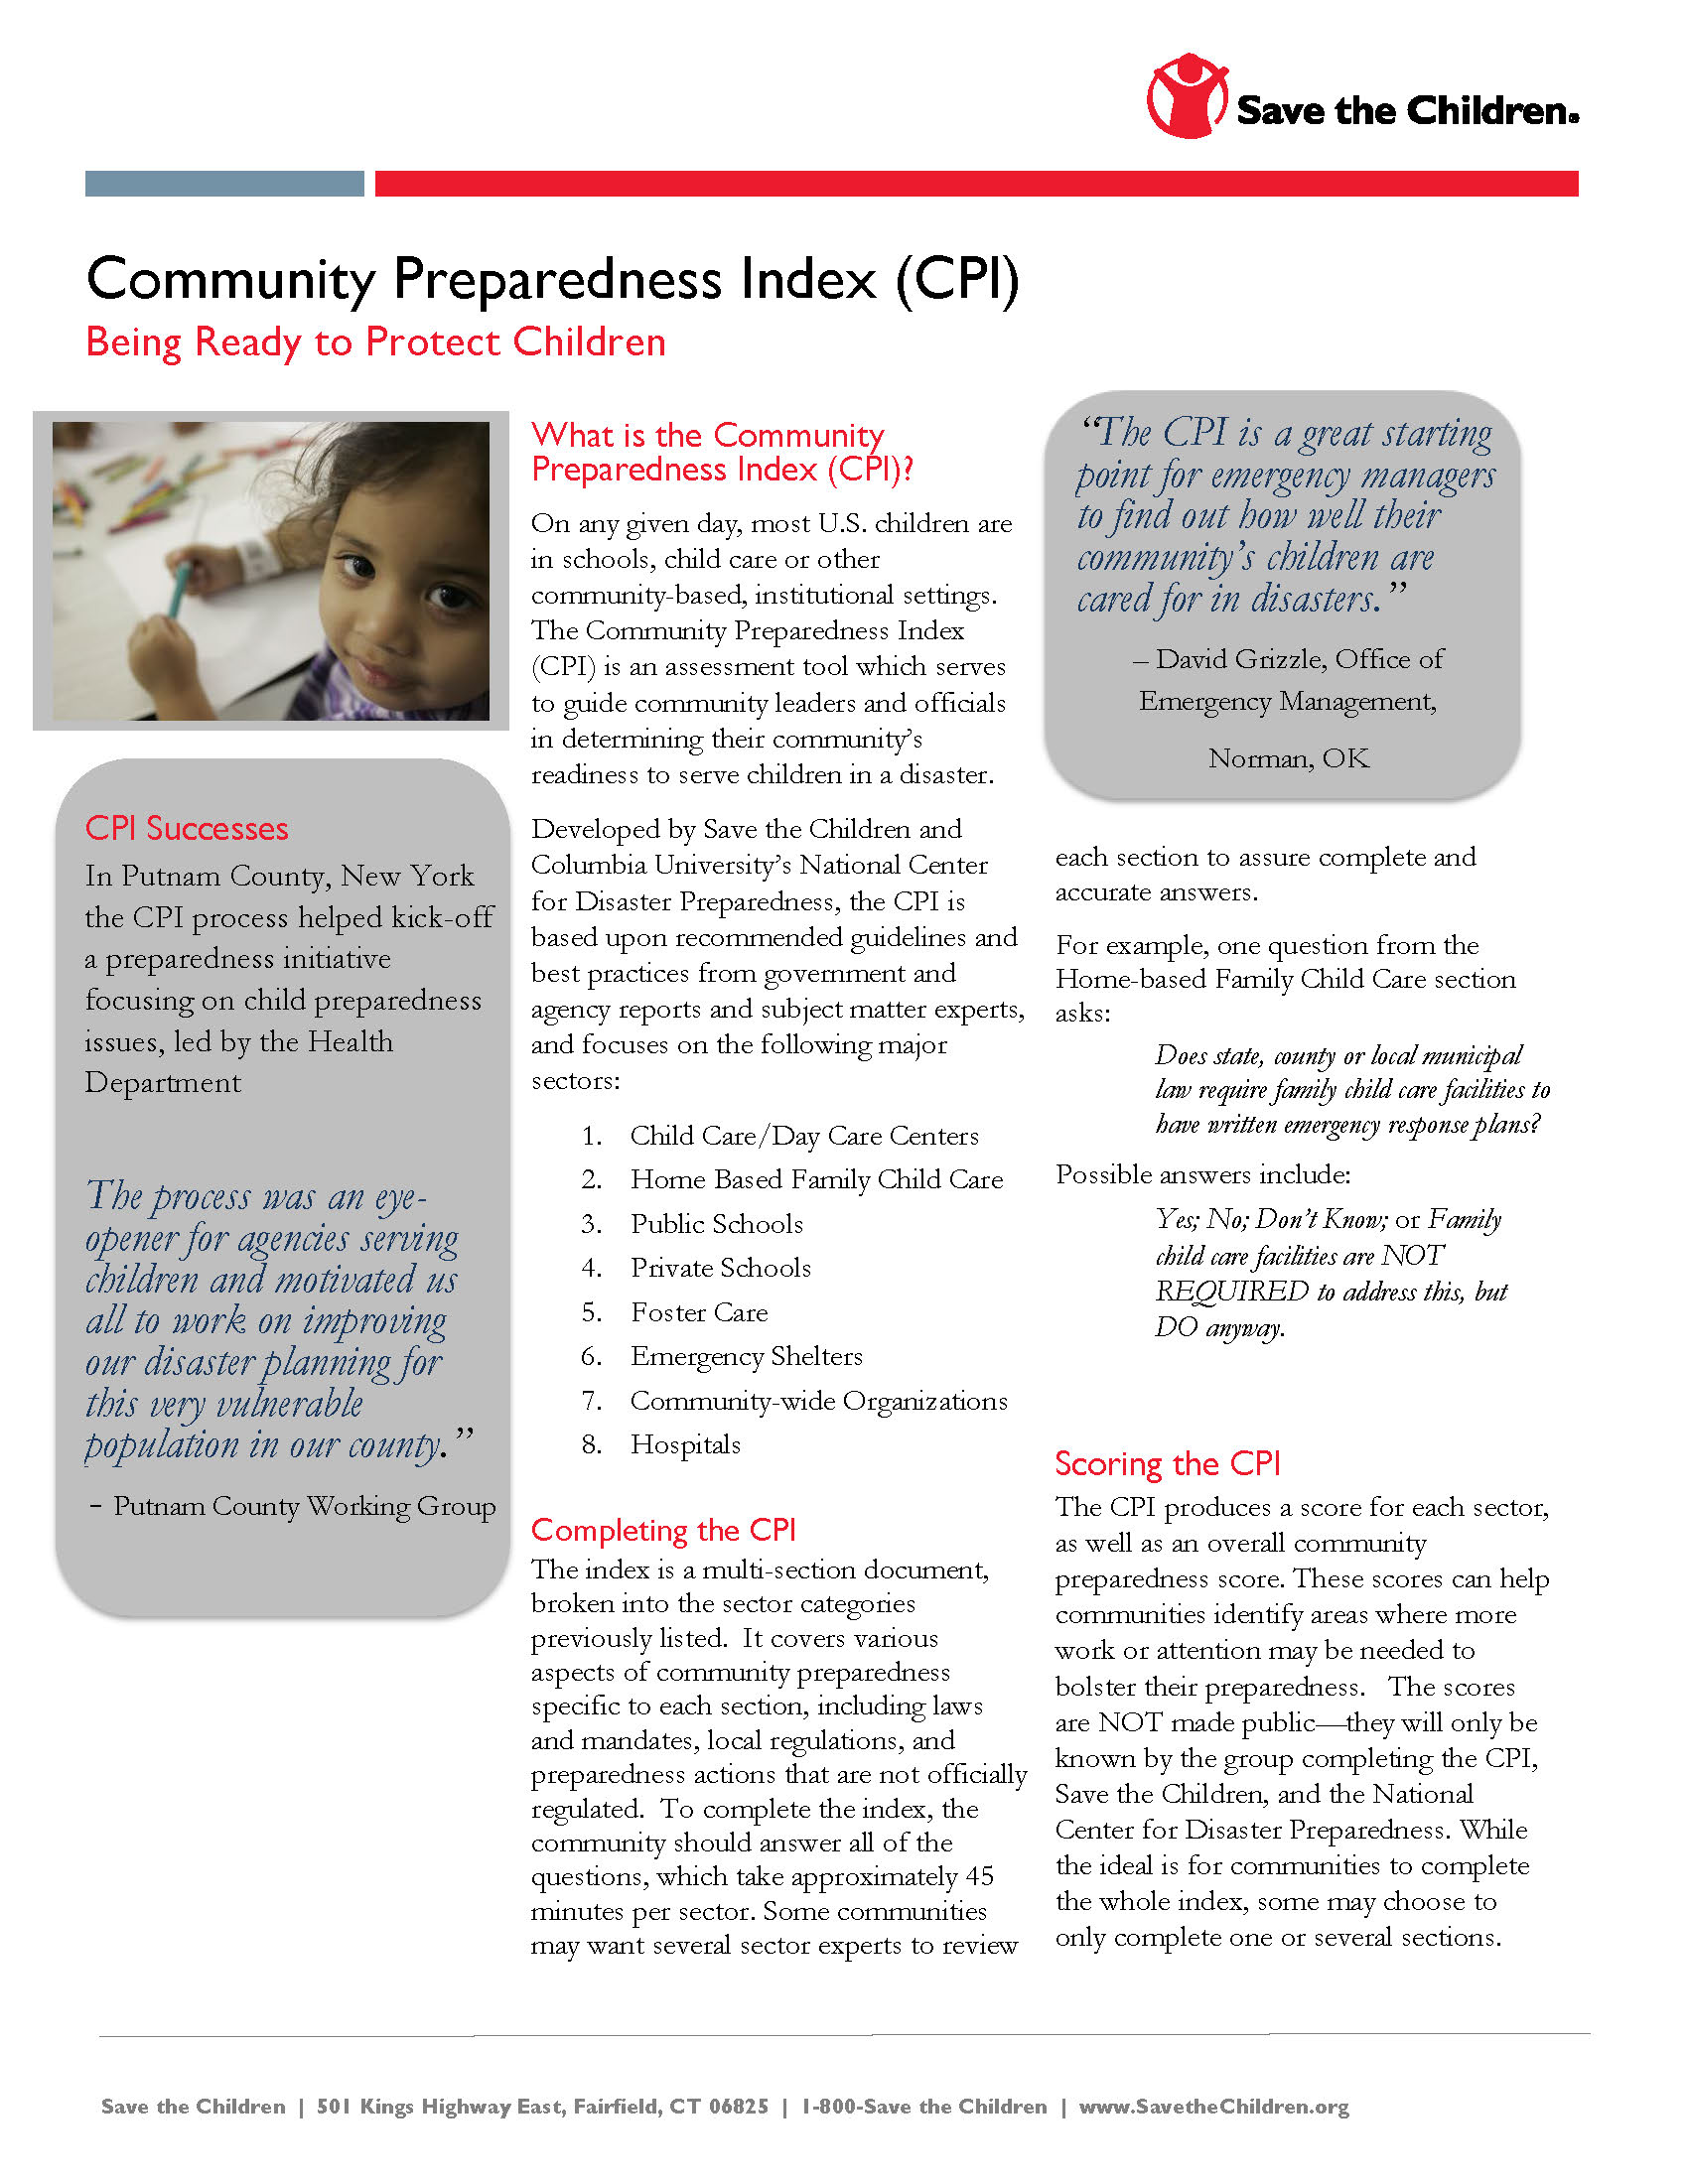 Community Preparedness Index: Fact Sheet